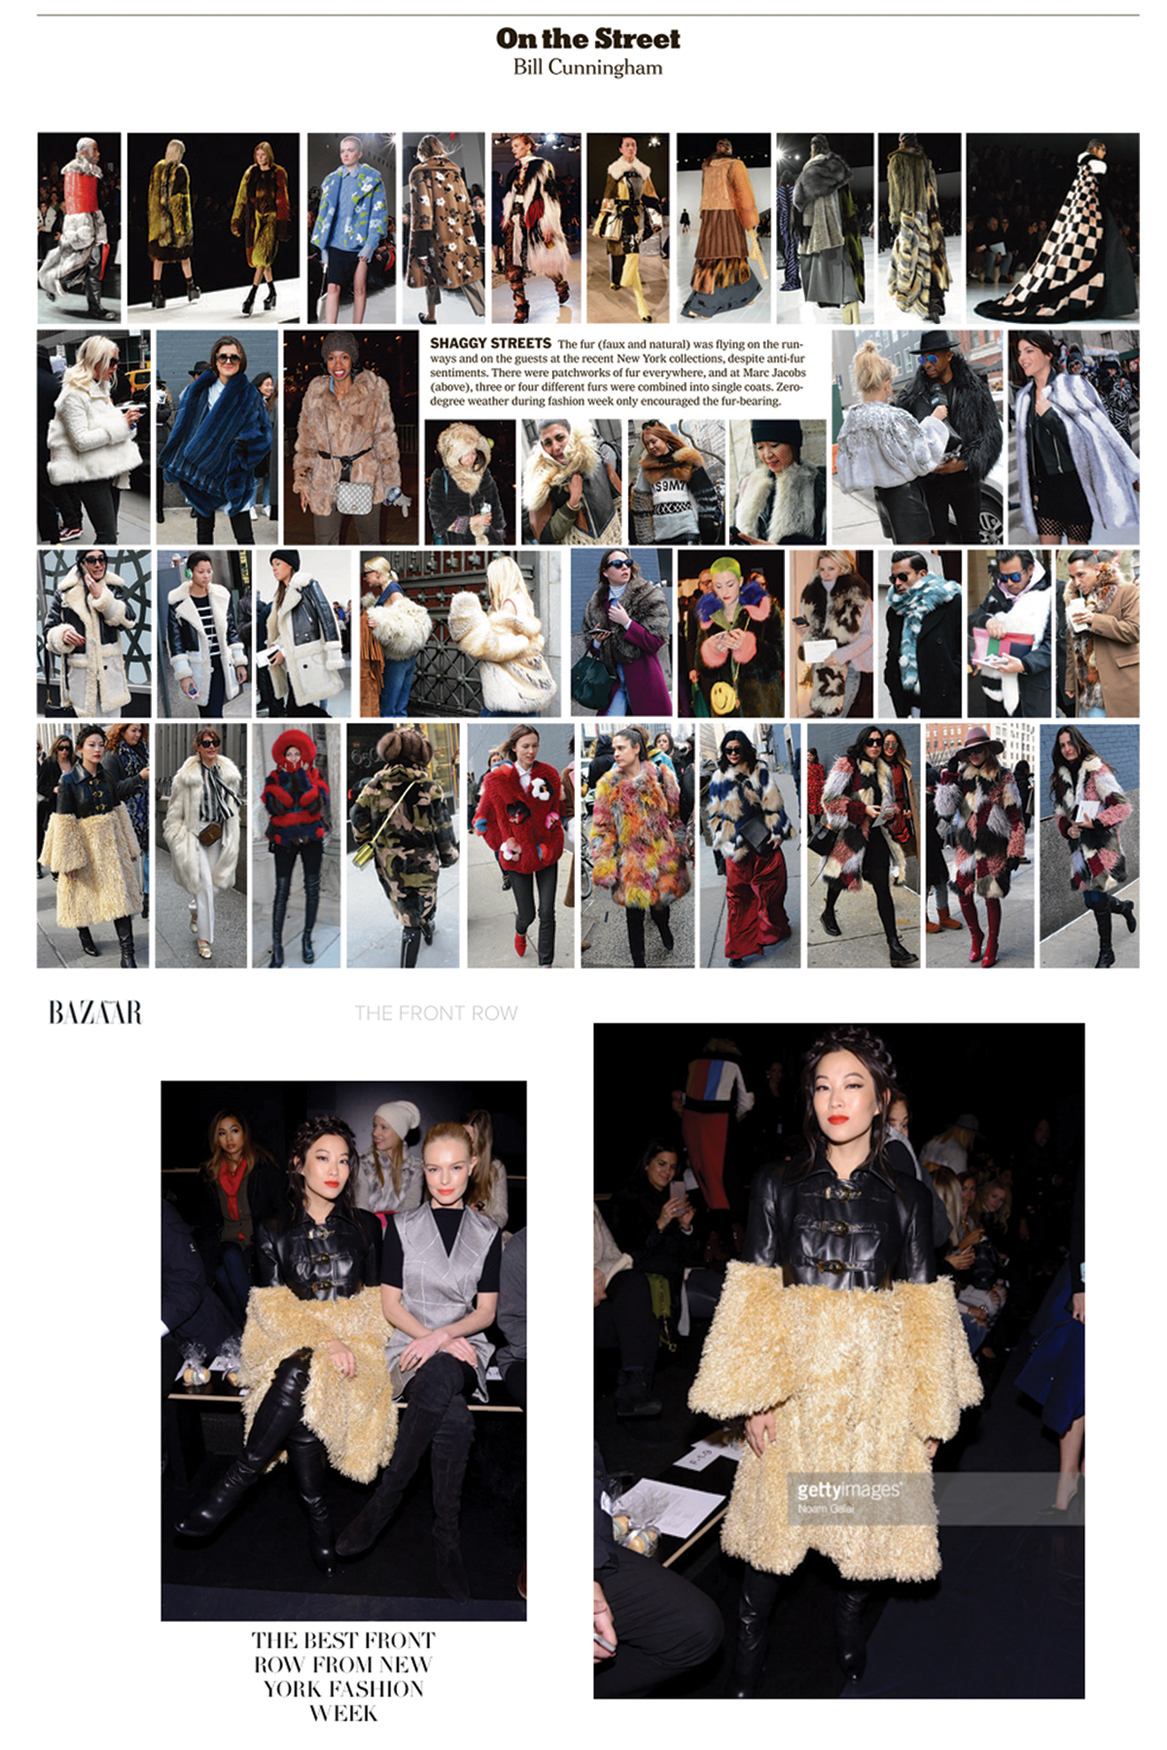 new york times nyt sunday styles bill cunningham legendary nyfw new york fashion week february street style photography icon legend documentary adren cho actress beauty red lipstick hair braid crown front row fashion show wearing kelsey randall black leather rounded shoulder faux fur coat cream camel light mongolian lamb curly warm buckle gold hardware belt strap kate bosworth  70's style retro daywear sportswear seventies hipster cool stylist made-to-measure womenswear bridal custom bespoke handcrafted sustainable ethical local production manufacturing made in new york city nyc brooklyn bushwick emerging designer ones to watch new talent rising star best of american fashion young designer